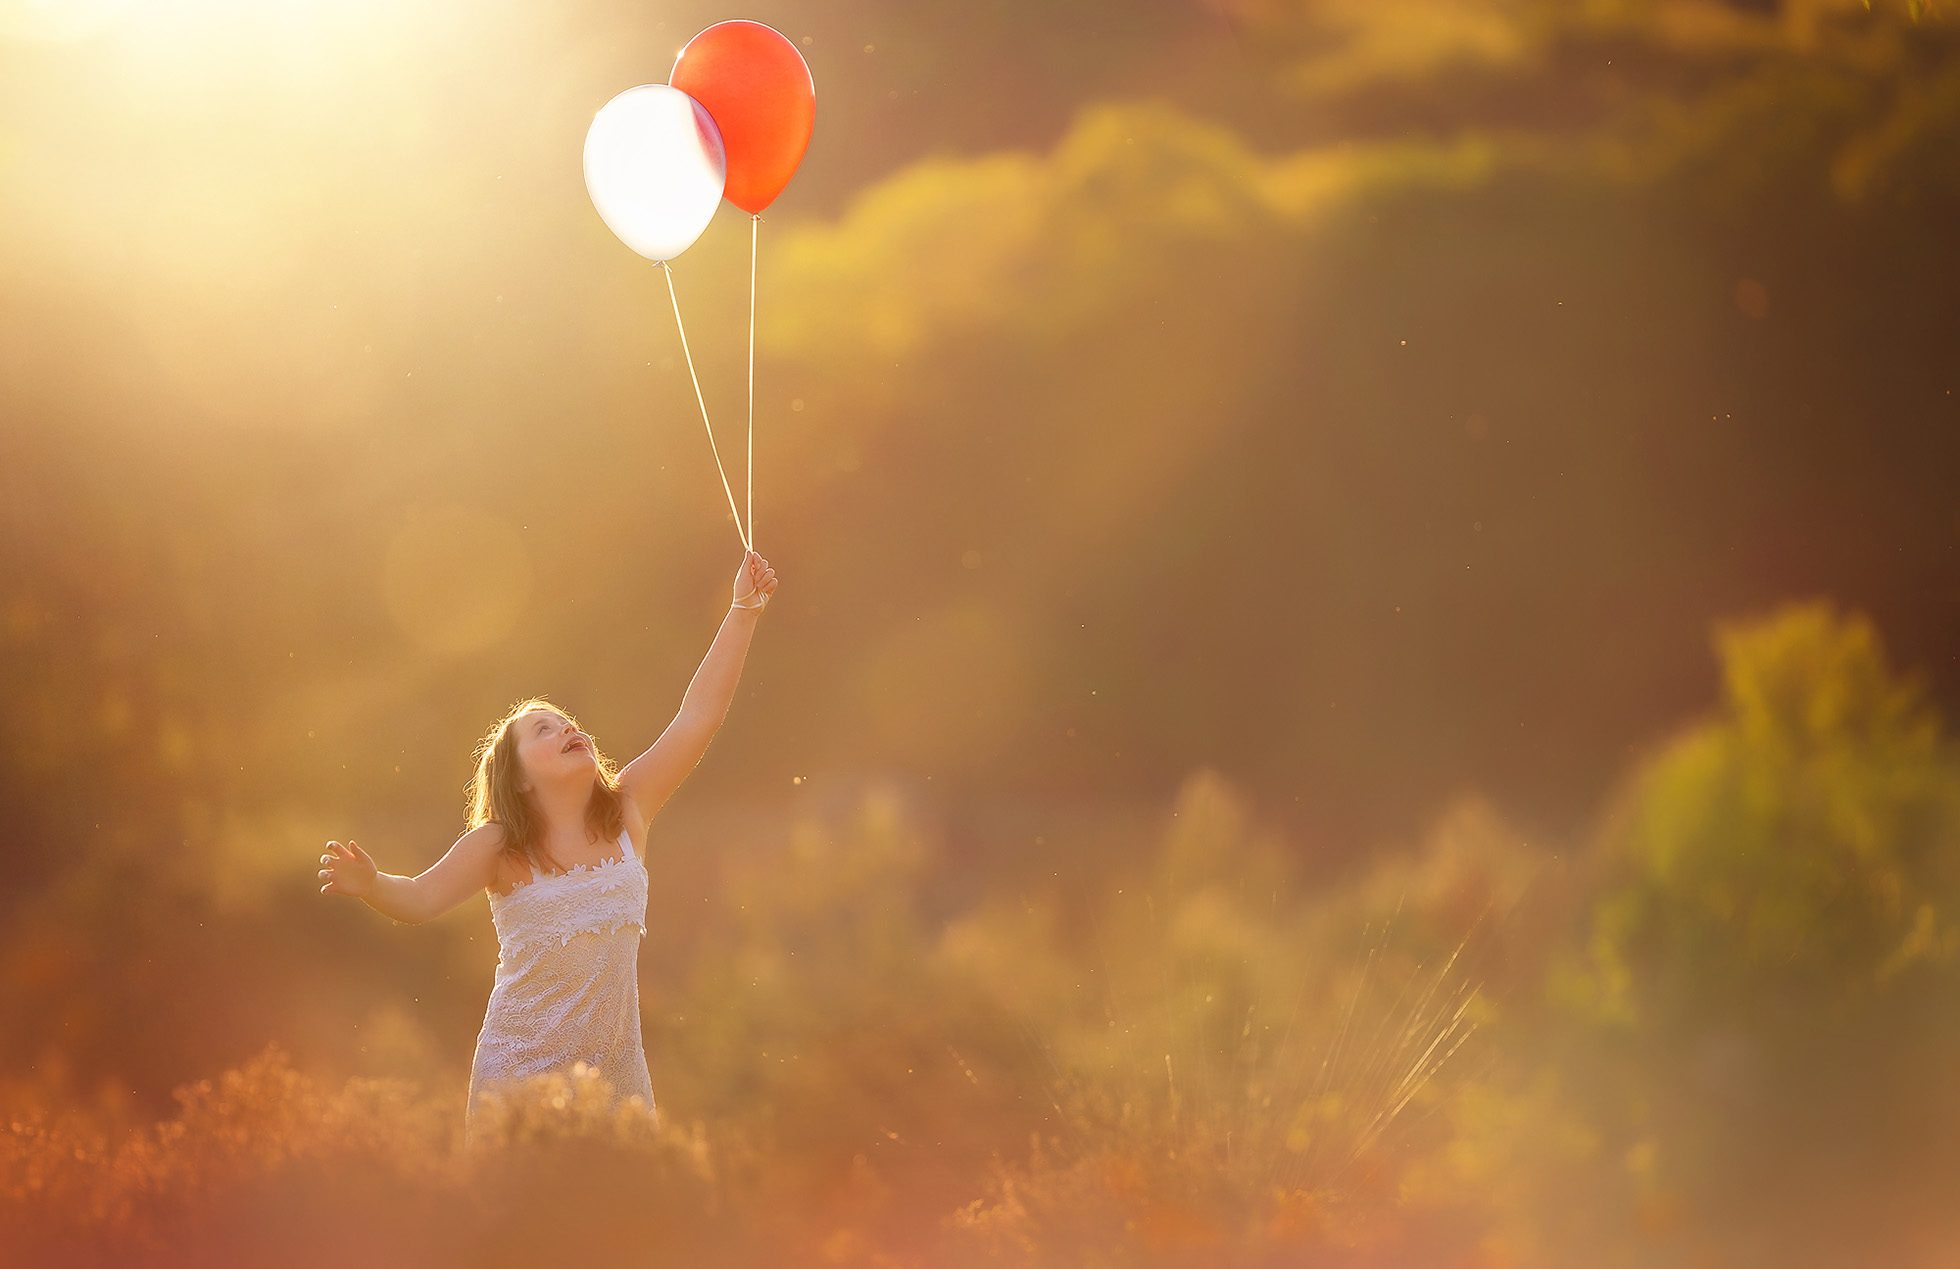 Click pro Canon color sunset portrait running with big red and white balloons through a field of gold by Willie Kers